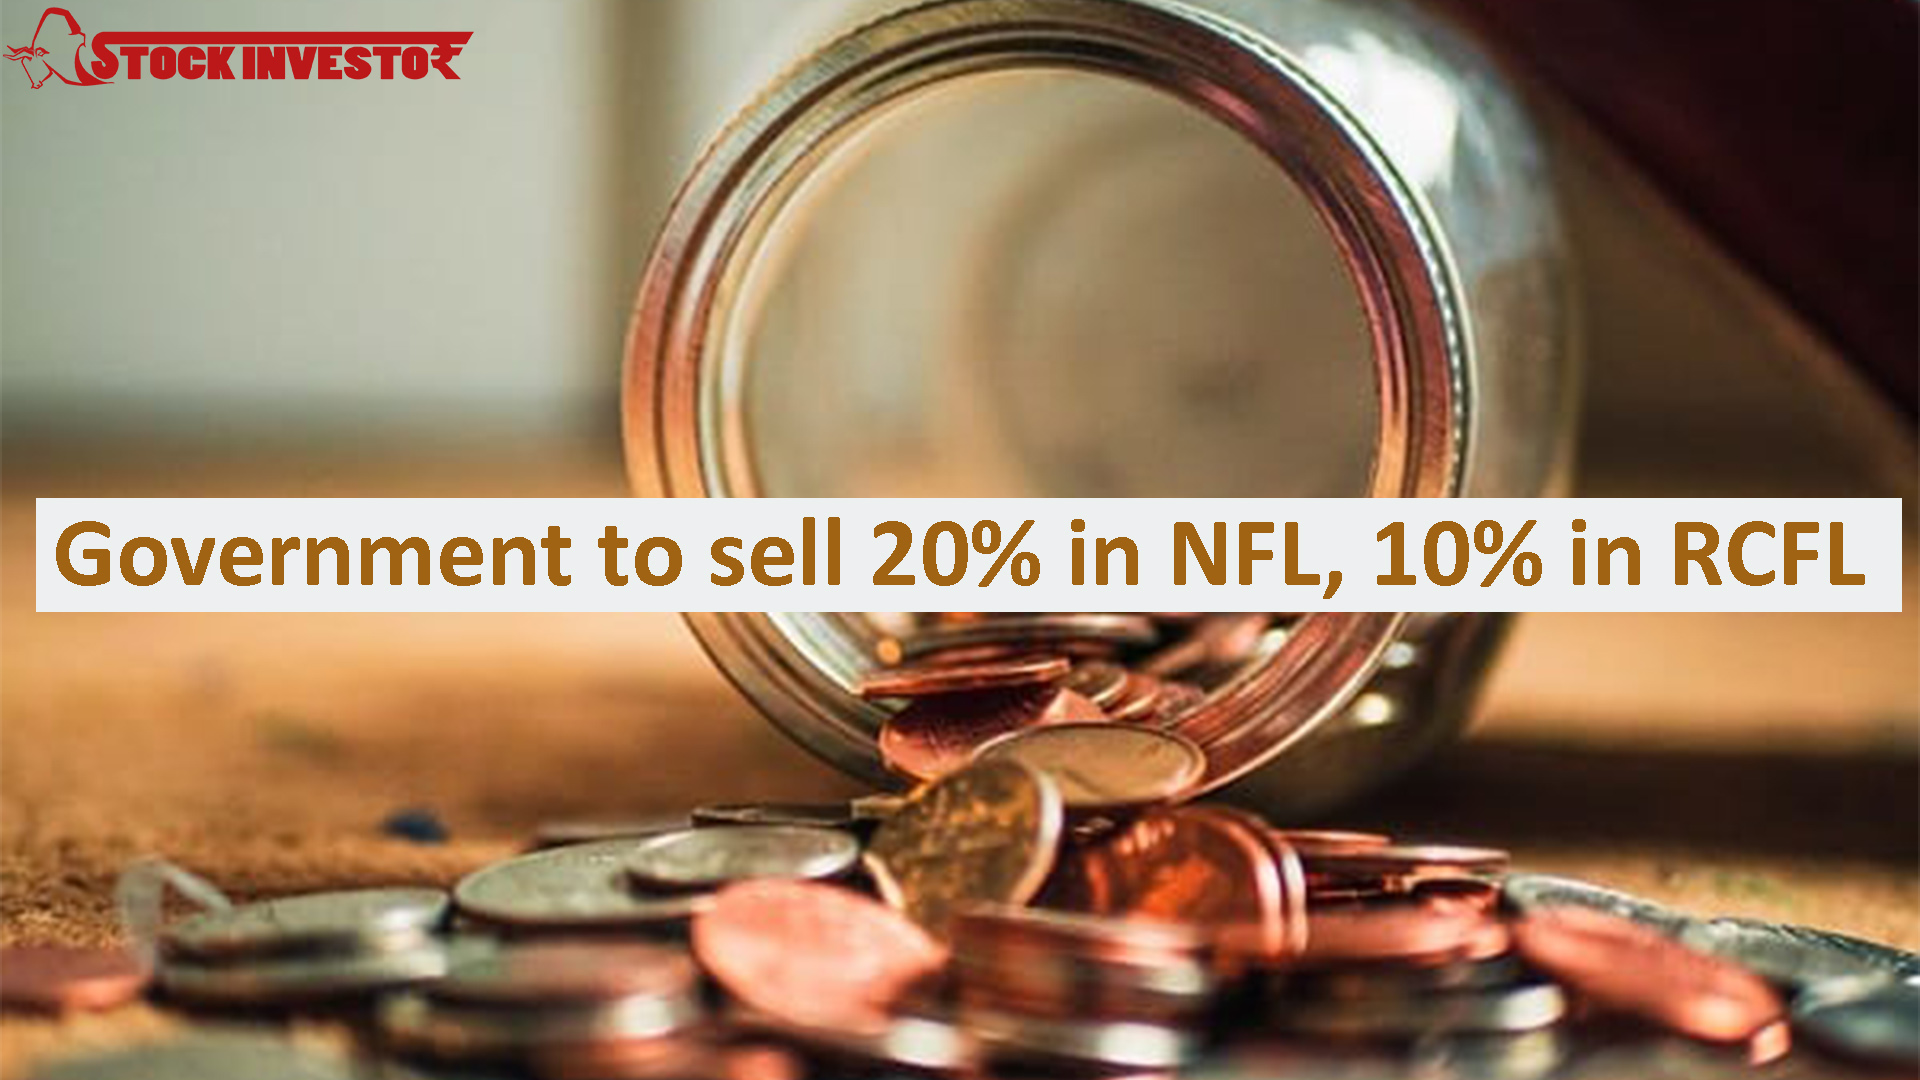 Government to sell 20% in NFL, 10% in RCFL